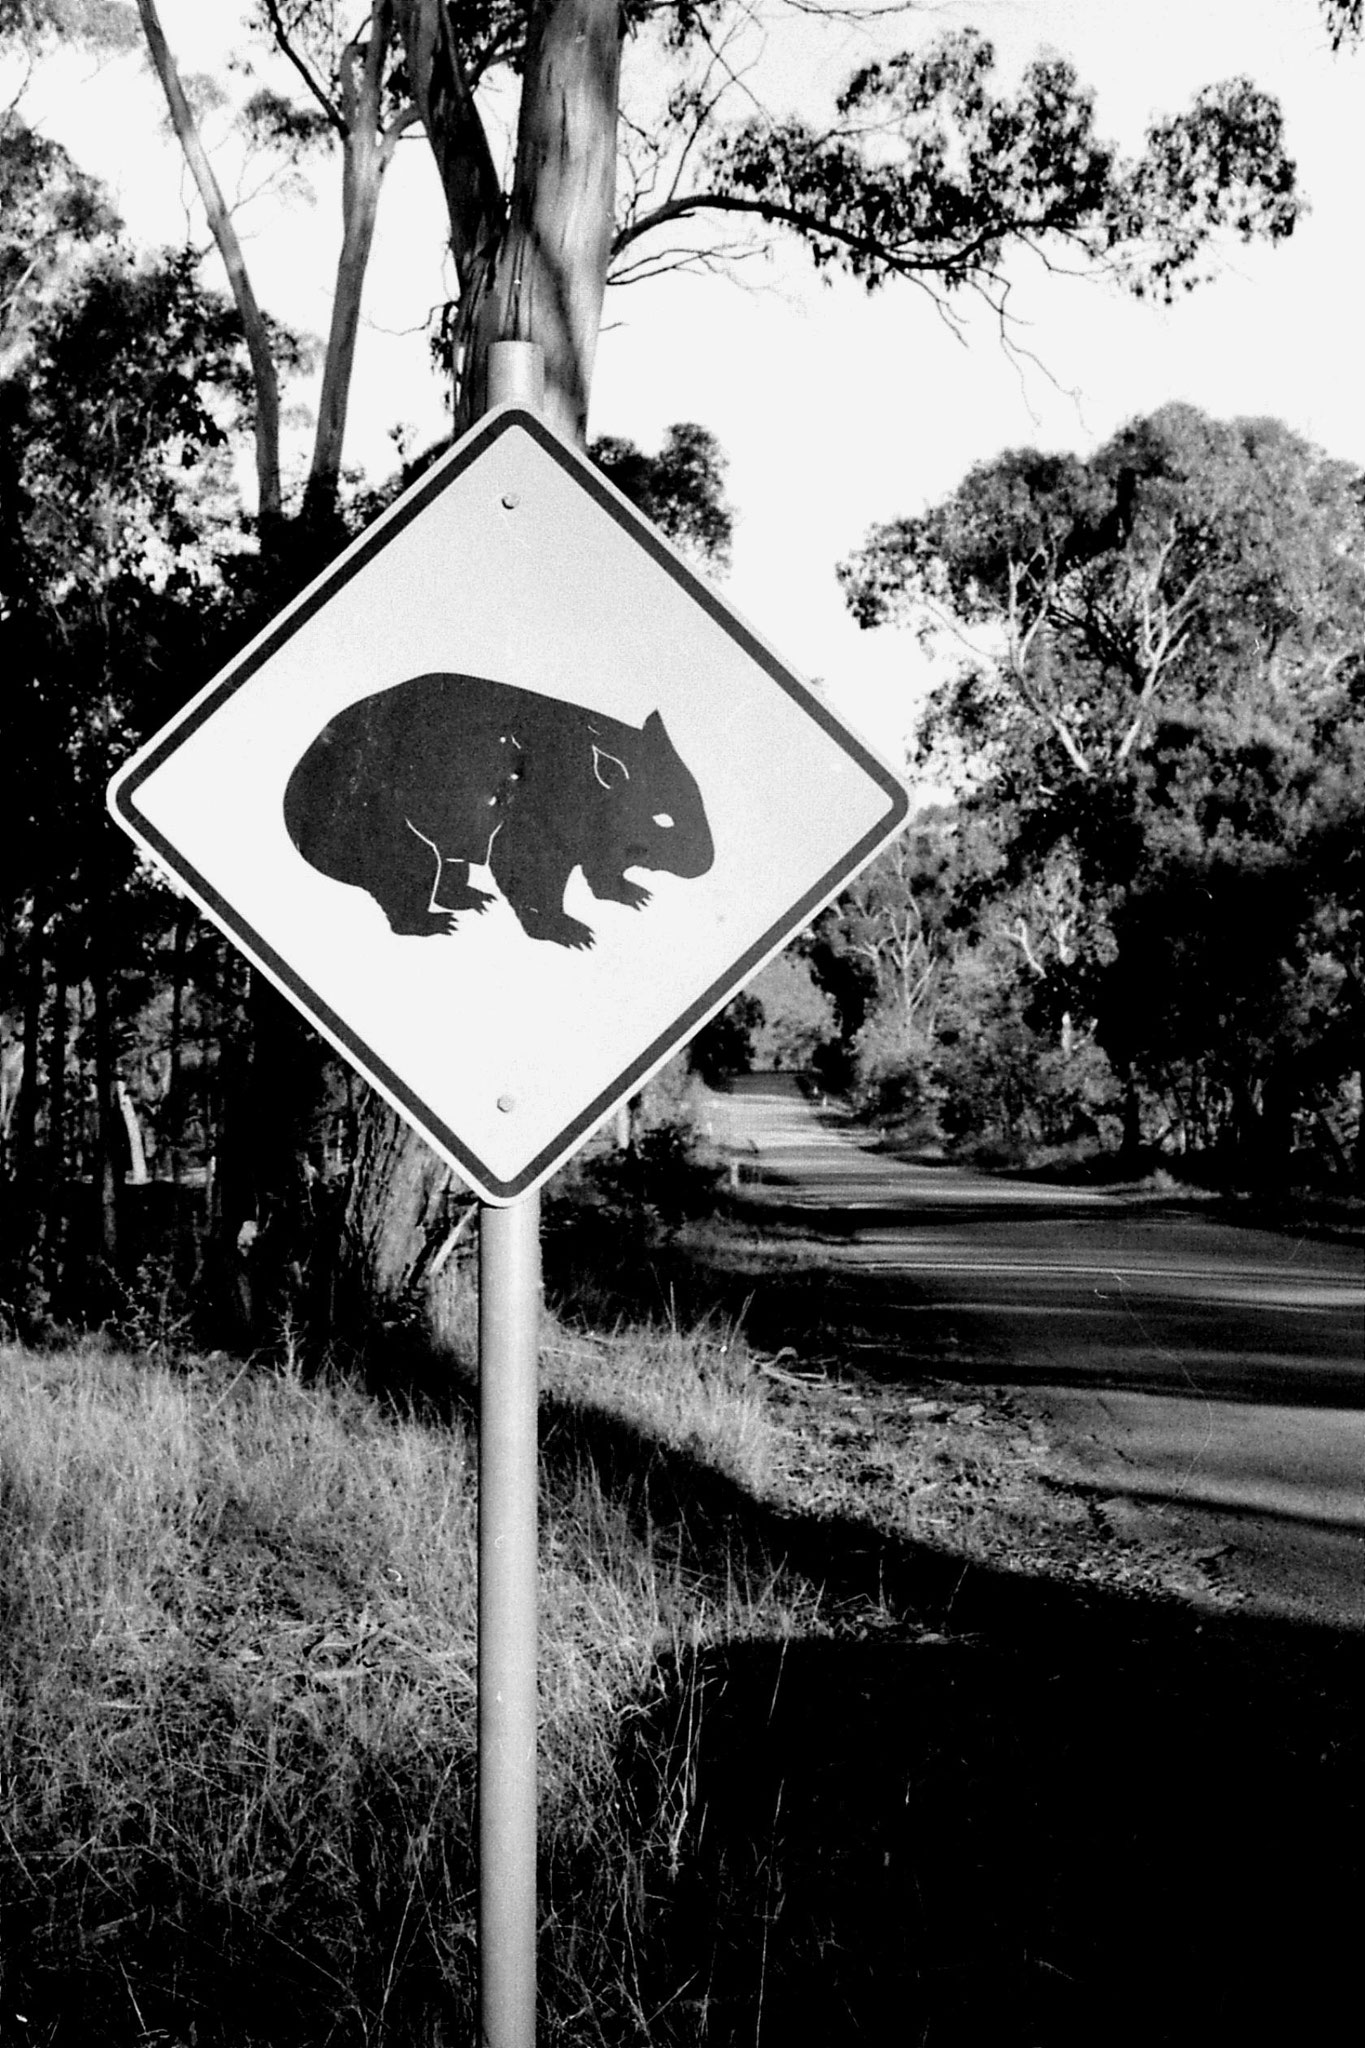 27/9/1990: 15: nr Mt Buffalo wombat warning